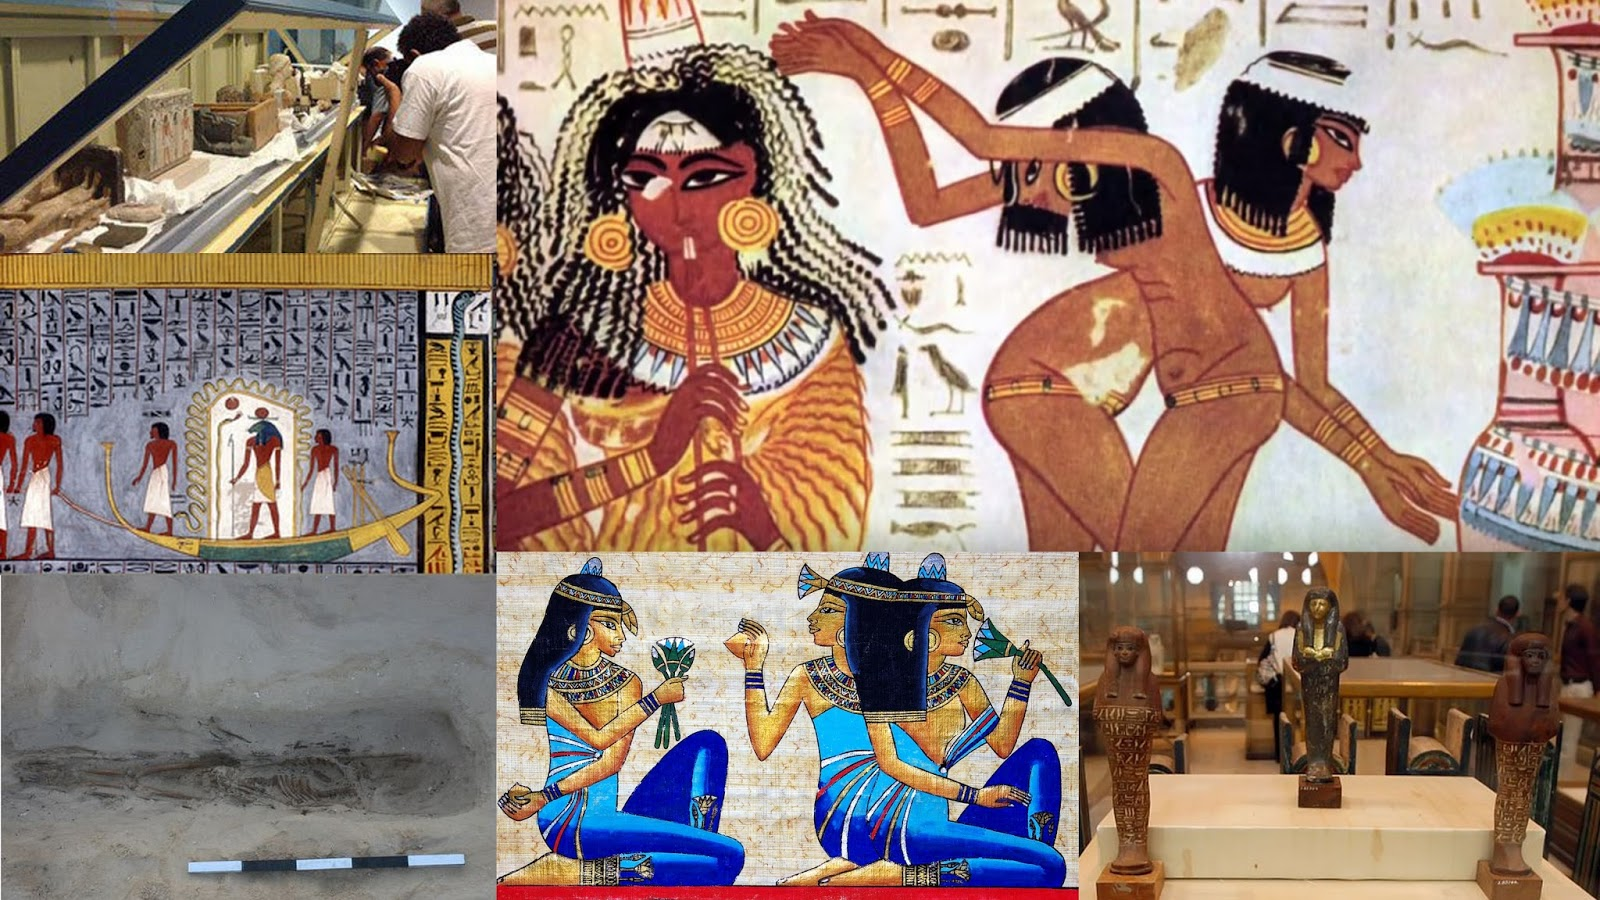 a thesis sentance for acient egyptian art Art and architecture of ancient egypt essay conclusion how to get help with math homework online shifting experience of self a bibliographic essay what to include in acknowledgements dissertation green supply chain management research paper type 2 diabetes essay conclusion starters how to write an.